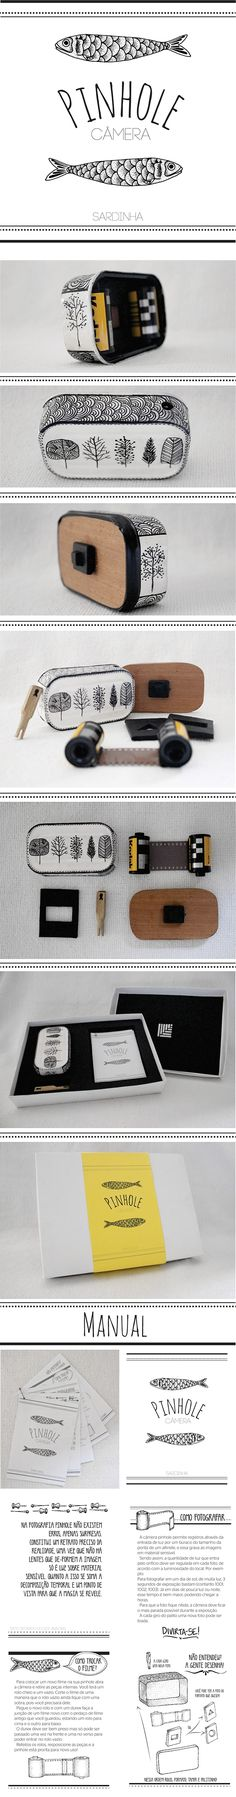 Pinhole camera made ​​from a can of sardines; development of an illustrated manual and packaging.